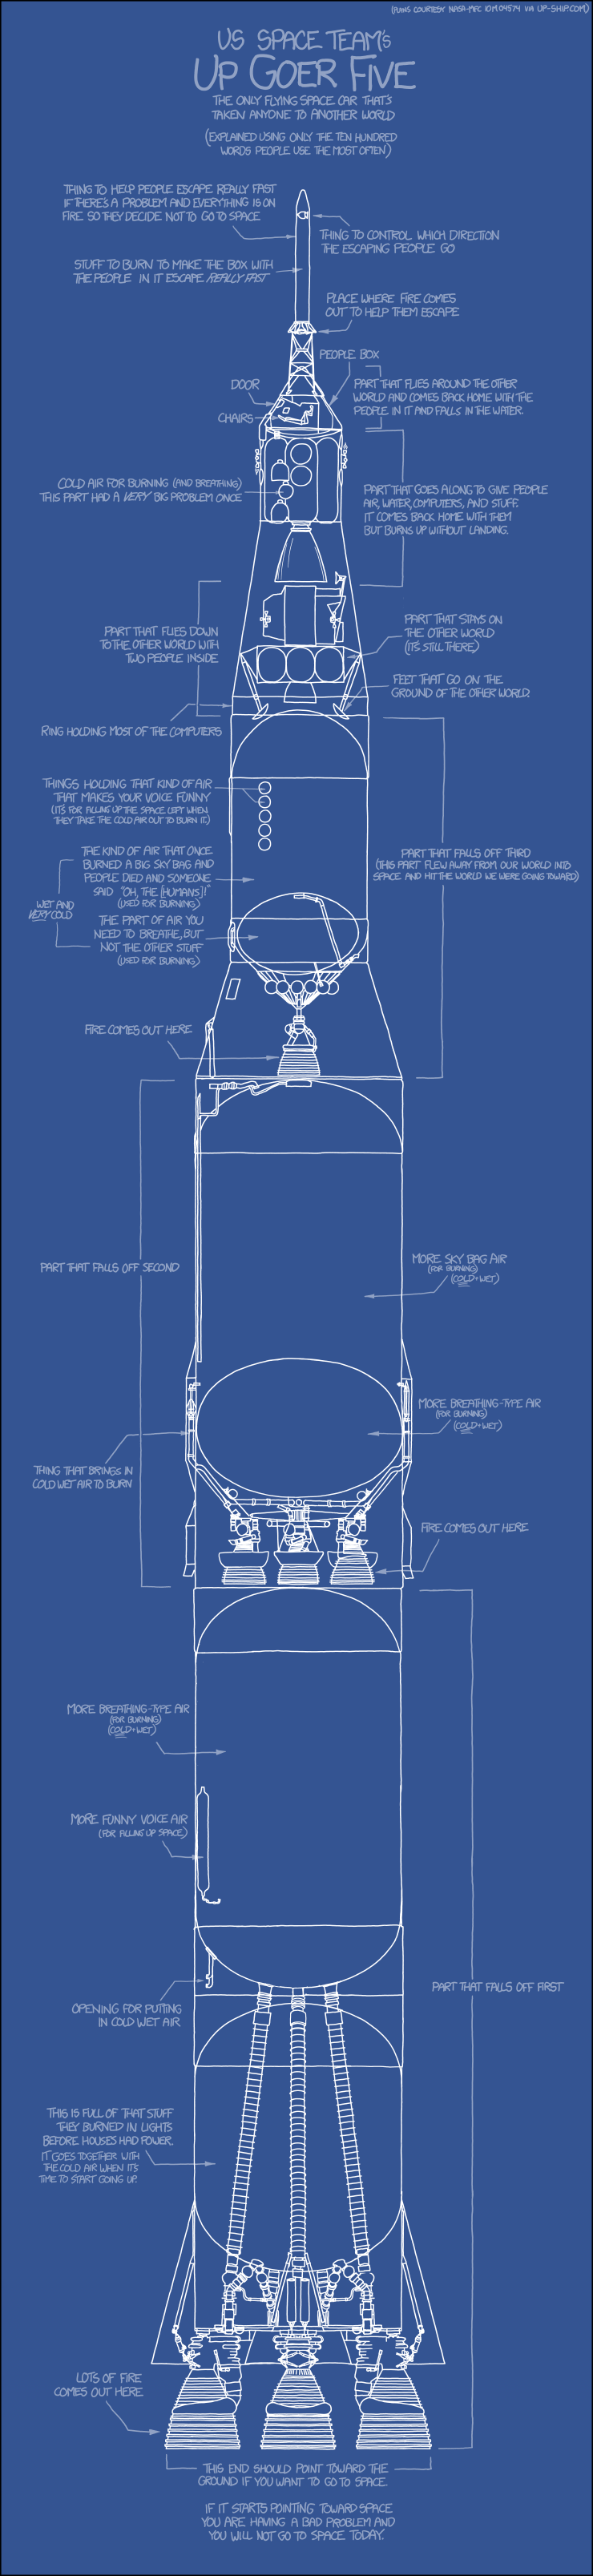 "Blueprint of rocket, labeled using silly-sounding simplistic language such as ""fire comes out here"""